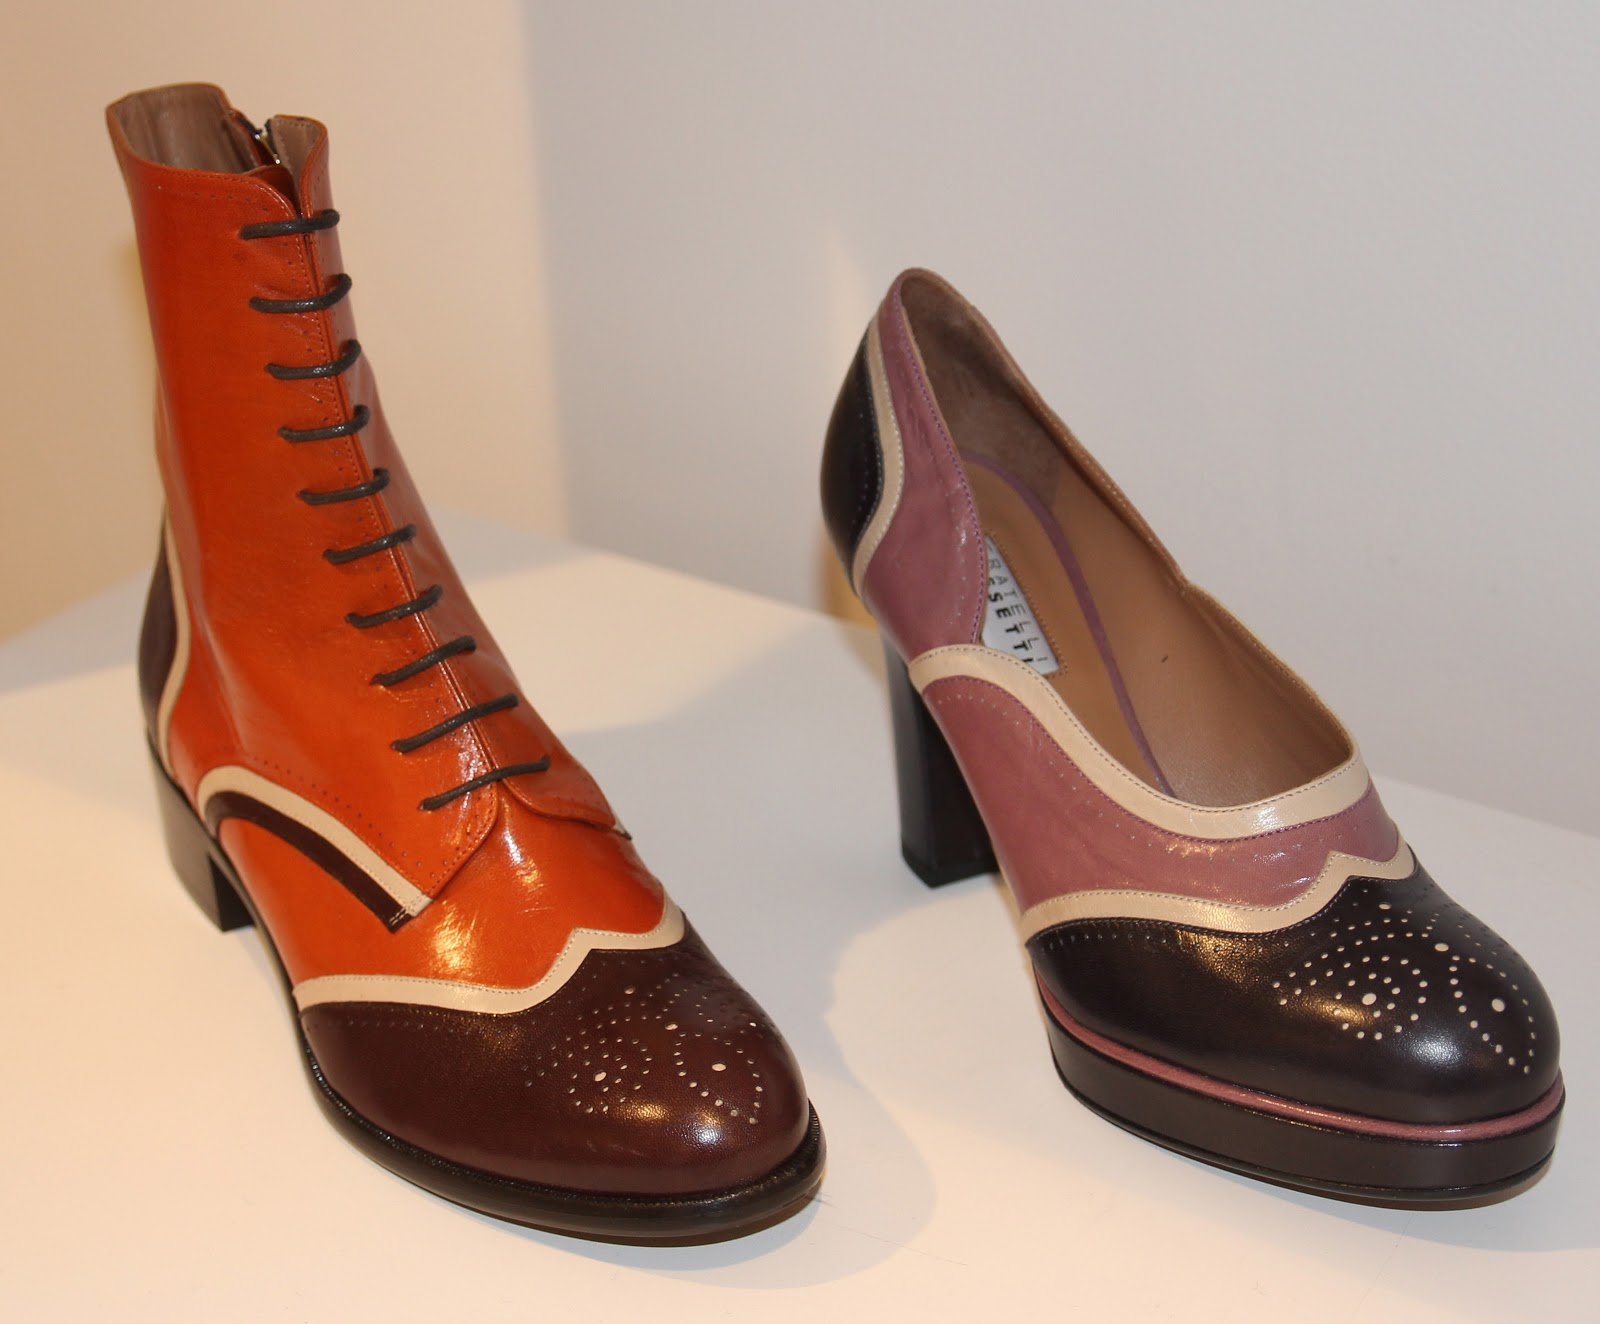 1f65b86ff53 ... in the terrific sophisticated and polished collections of footwear- for  men/women- that we recently previewed -by the Italian masters-Fratelli  Rossetti.